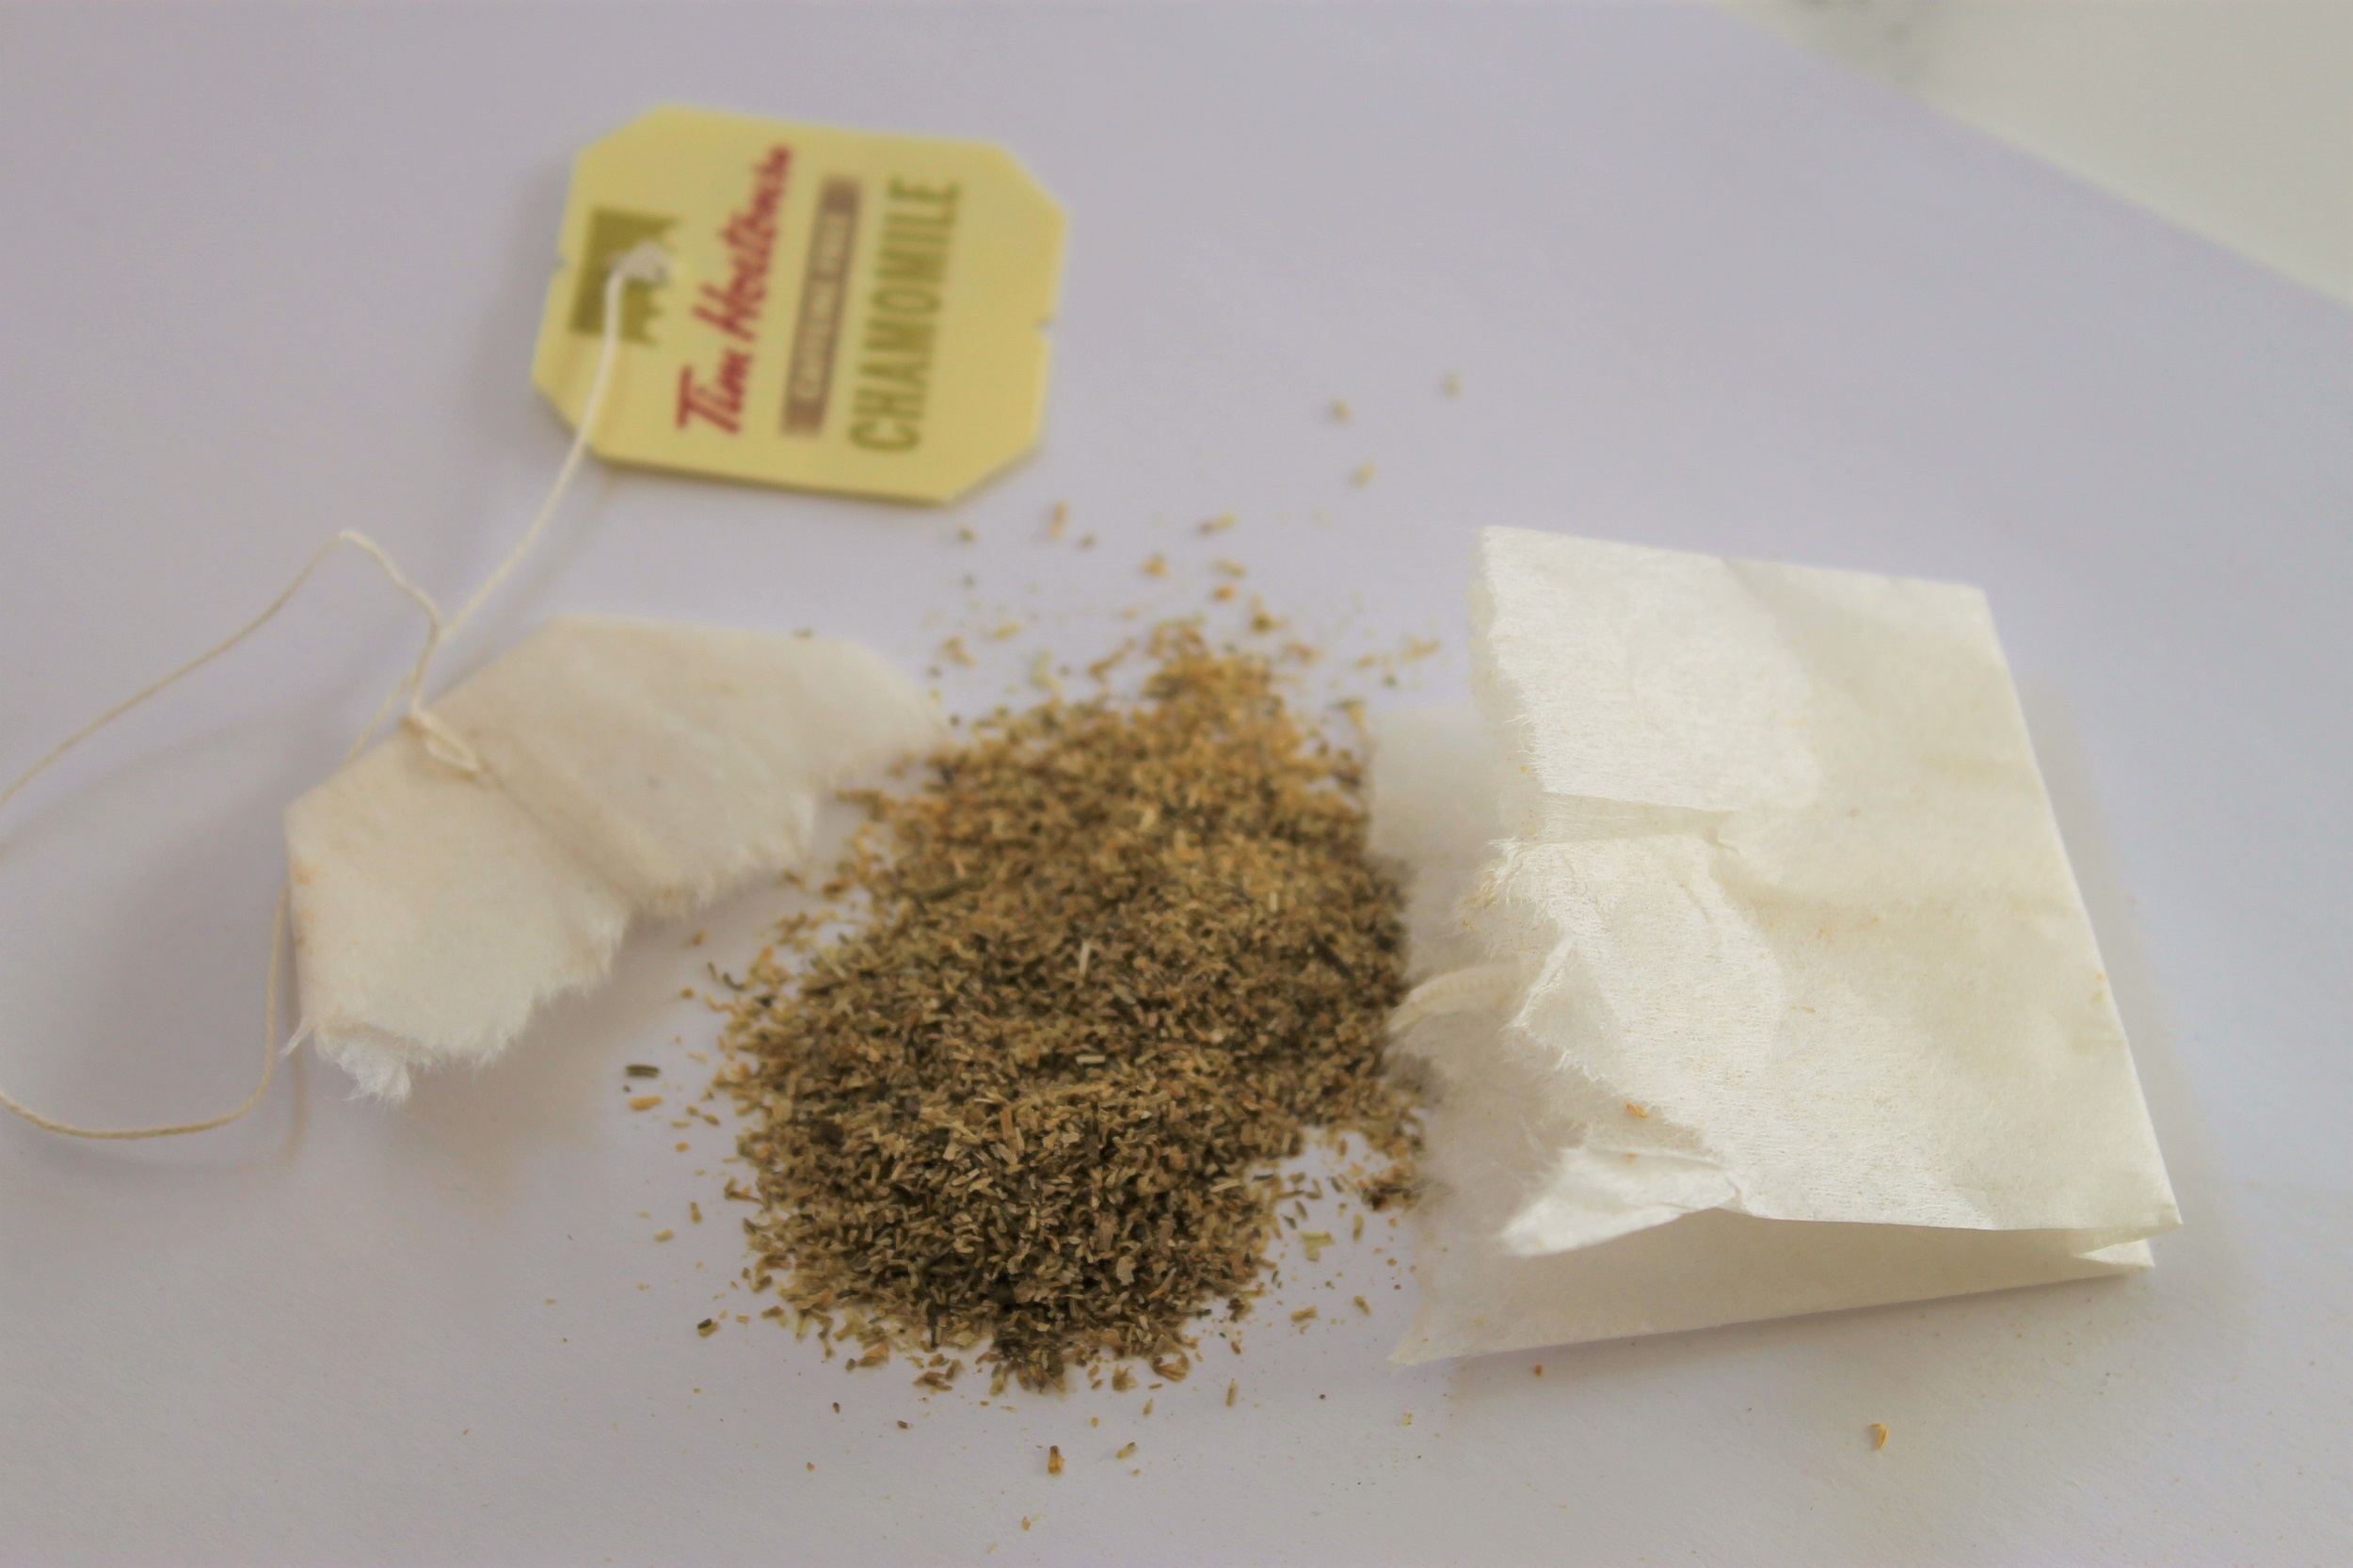 camomile flower petals from ripped teabag